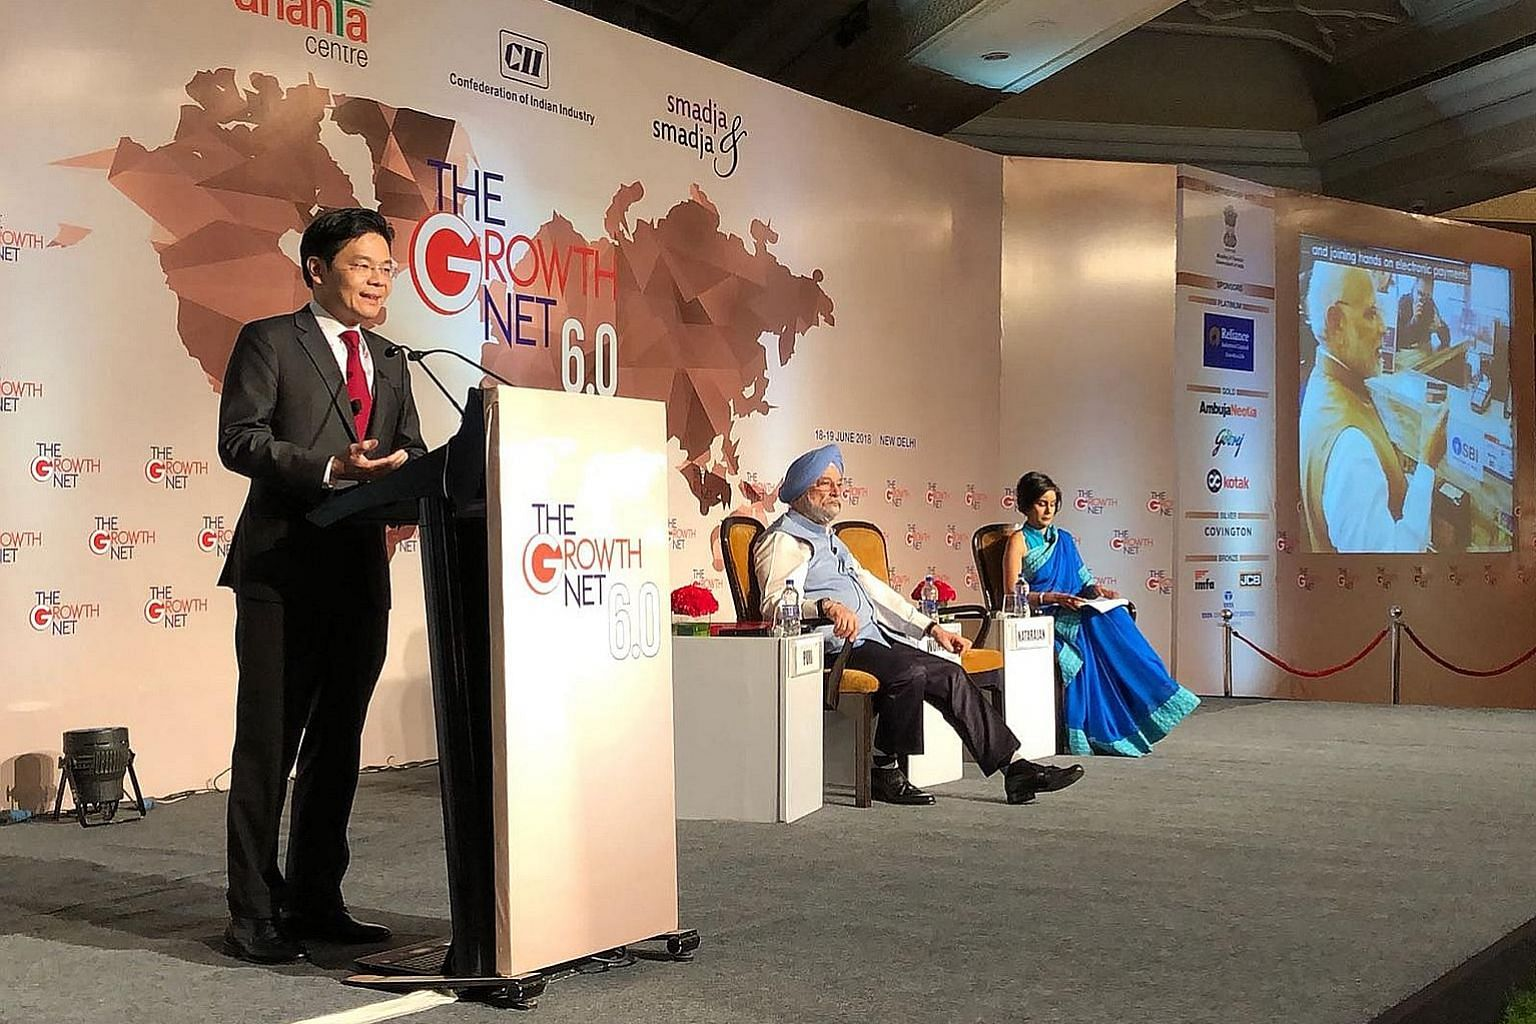 Mr Lawrence Wong speaking at the convention, sharing the stage with Mr Hardeep Singh Puri, India's minister of state for housing and urban affairs, and Ms Manisha Natarajan, the moderator.